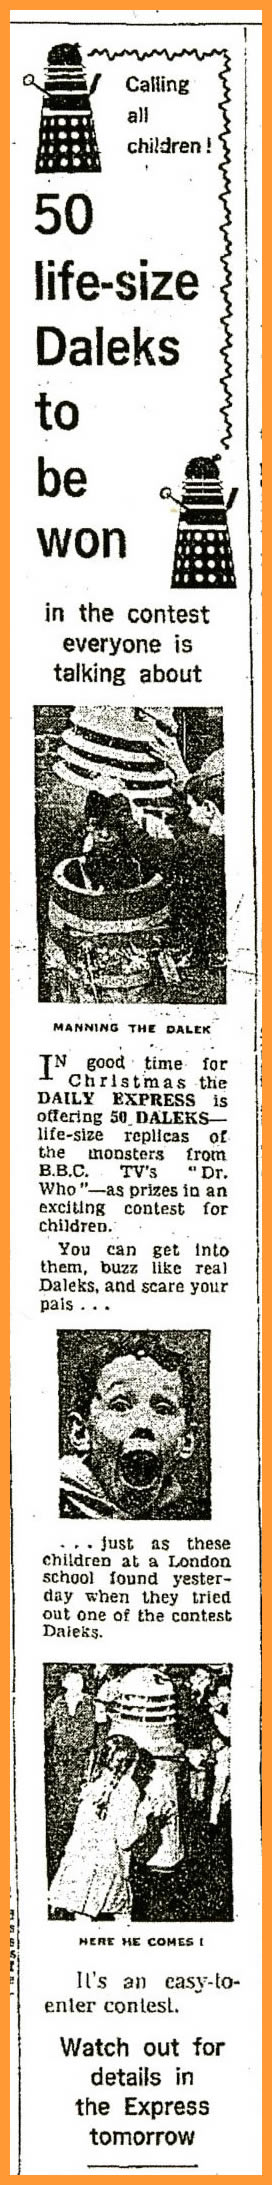 WANTED - Daily Express, 10 December 1964 with a Name a Dalek competition article